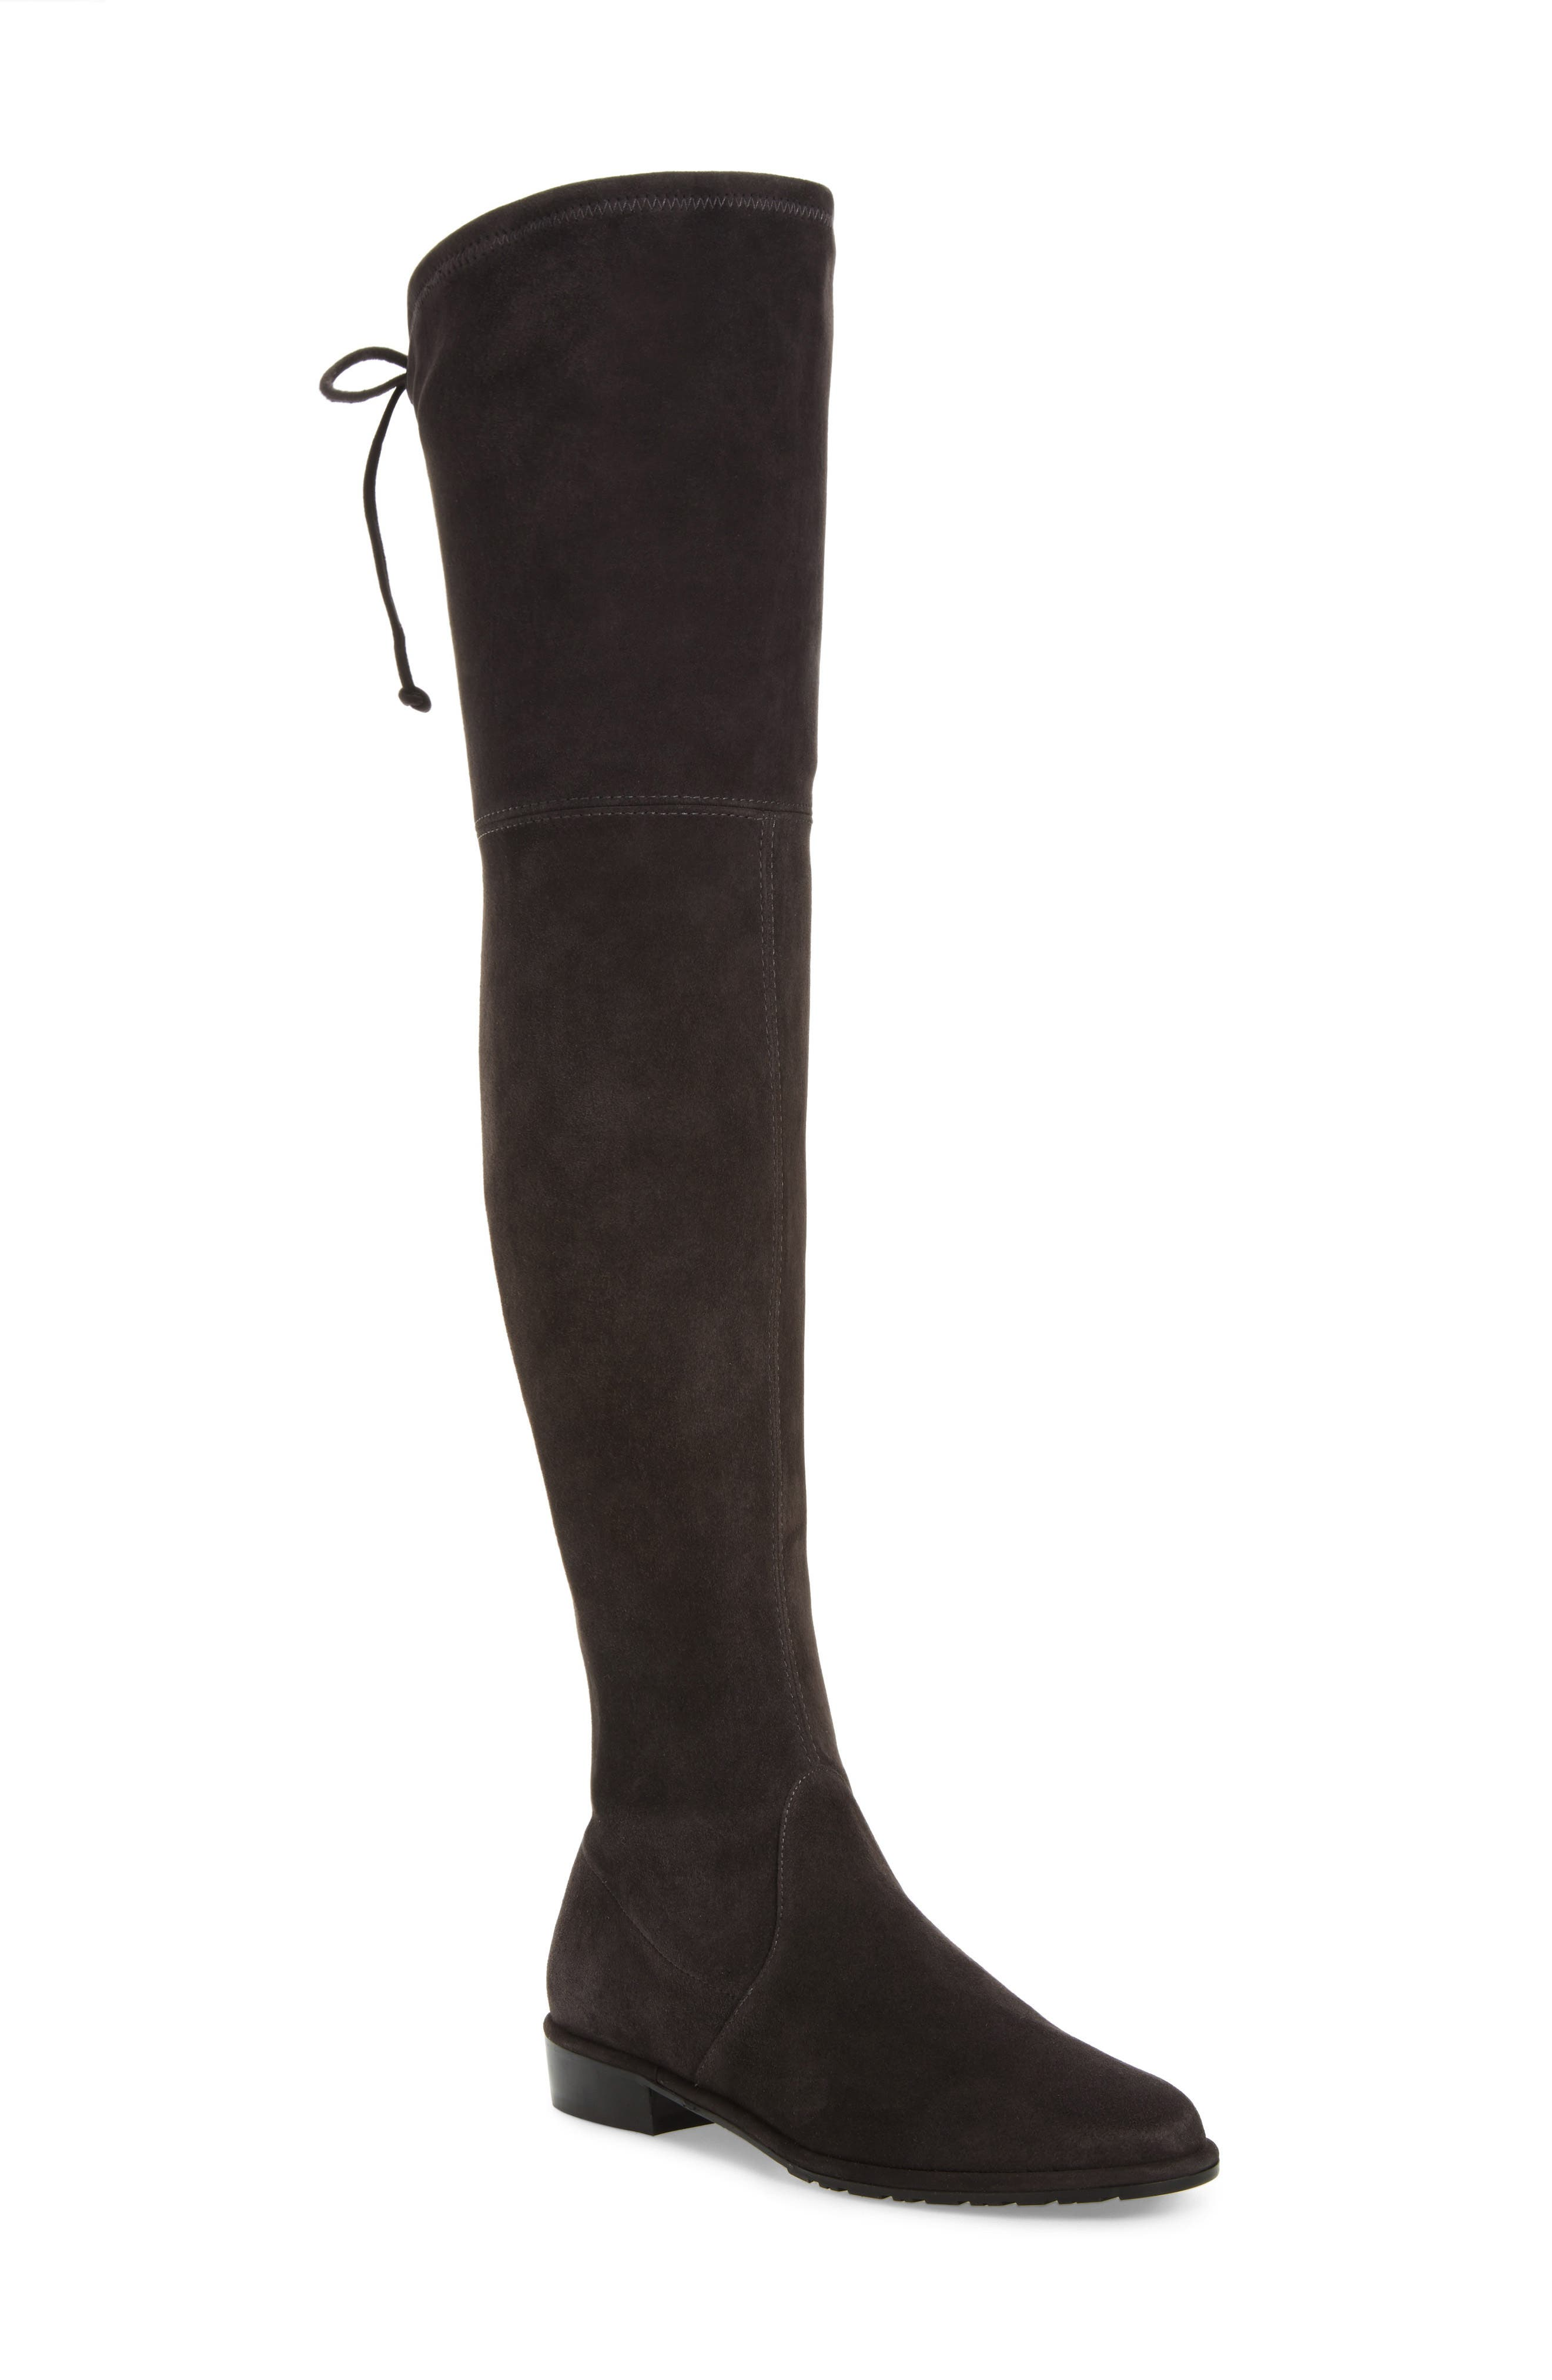 'Lowland' Over the Knee Boot,                         Main,                         color, ASPHALT SUEDE